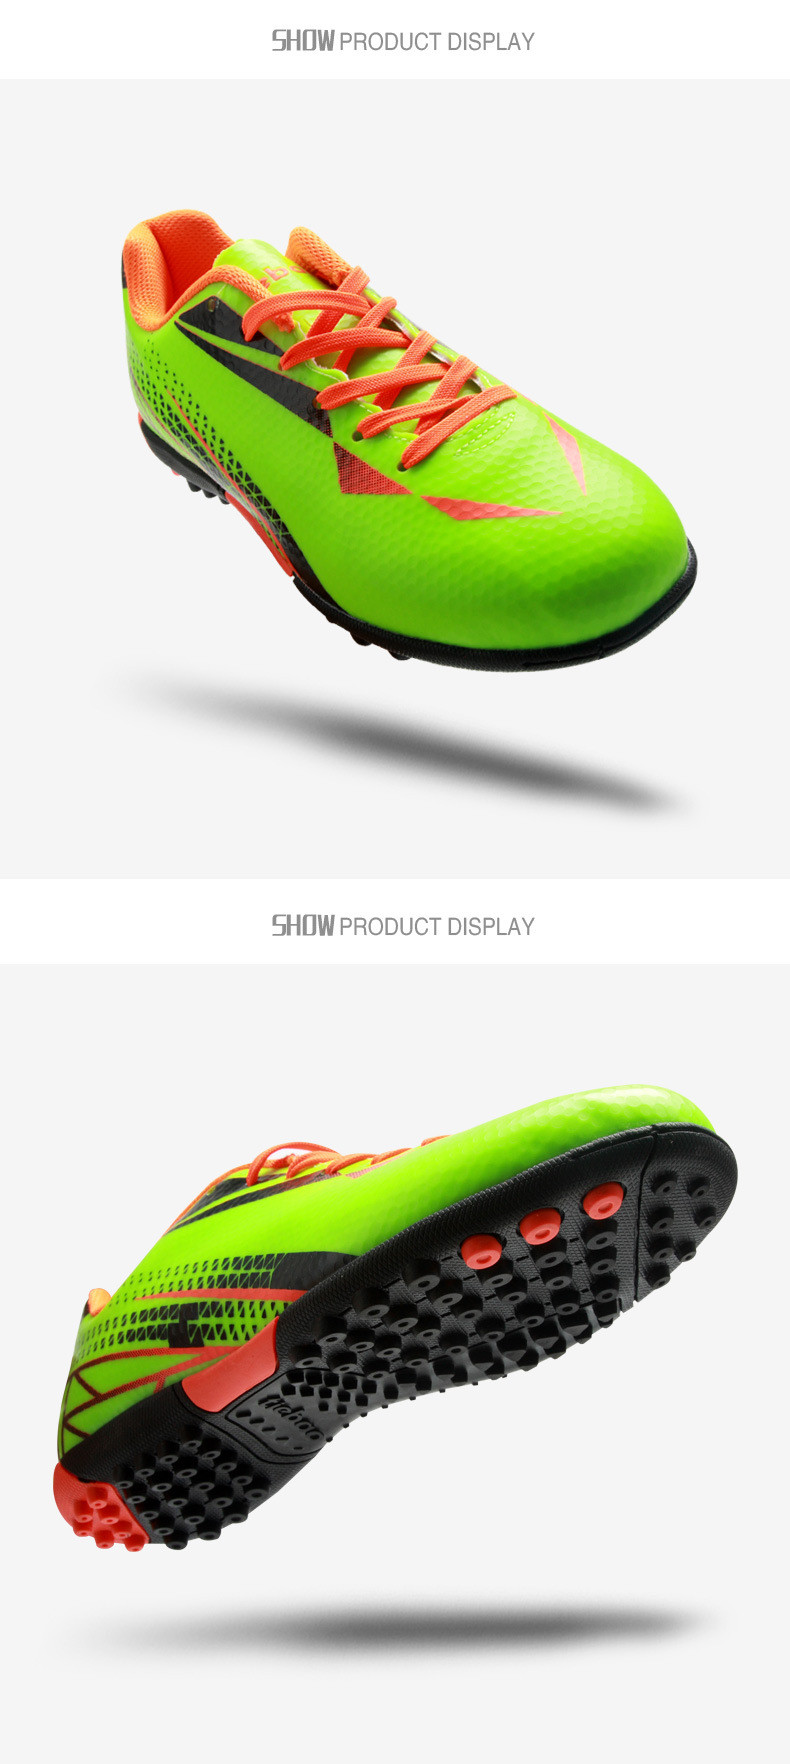 hight resolution of new soccer shoes boots futsal chaussures foot mens indoor football boots voetbalschoenen football cleats soccer shoes 3 colorsusd 35 99 pair